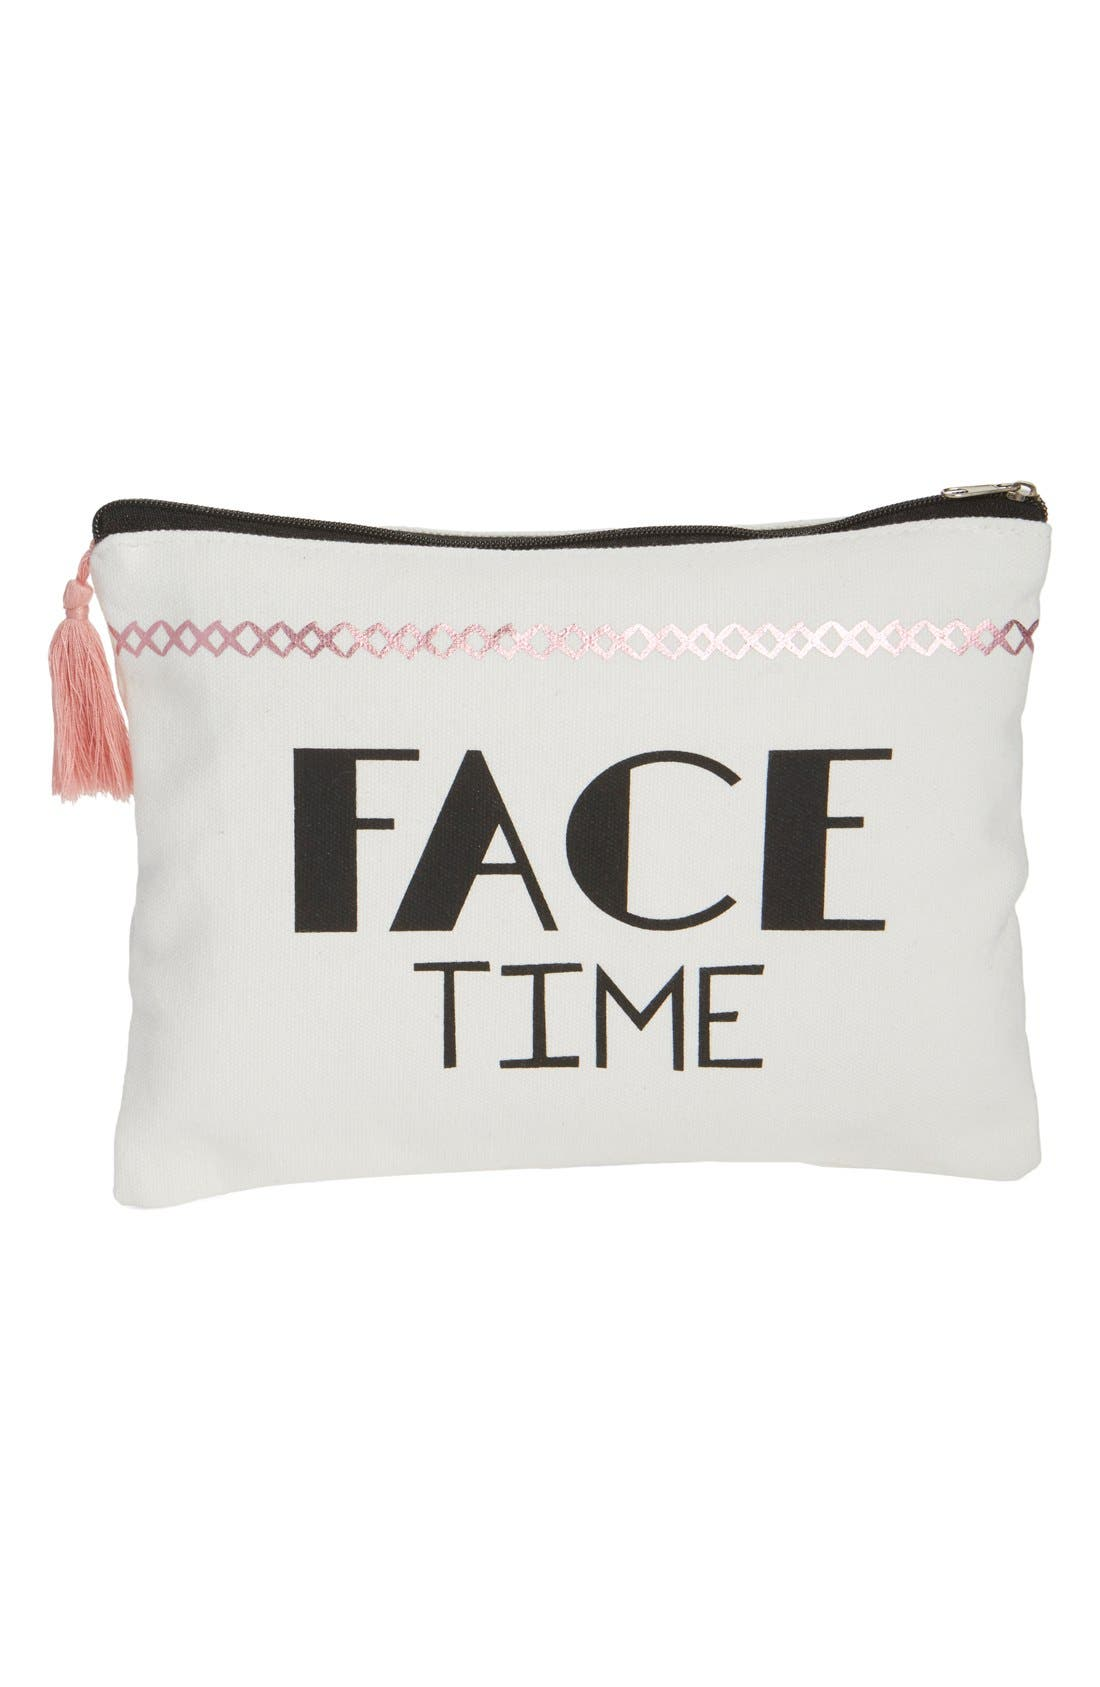 Main Image - Levtex 'Face Time' Accessory Bag